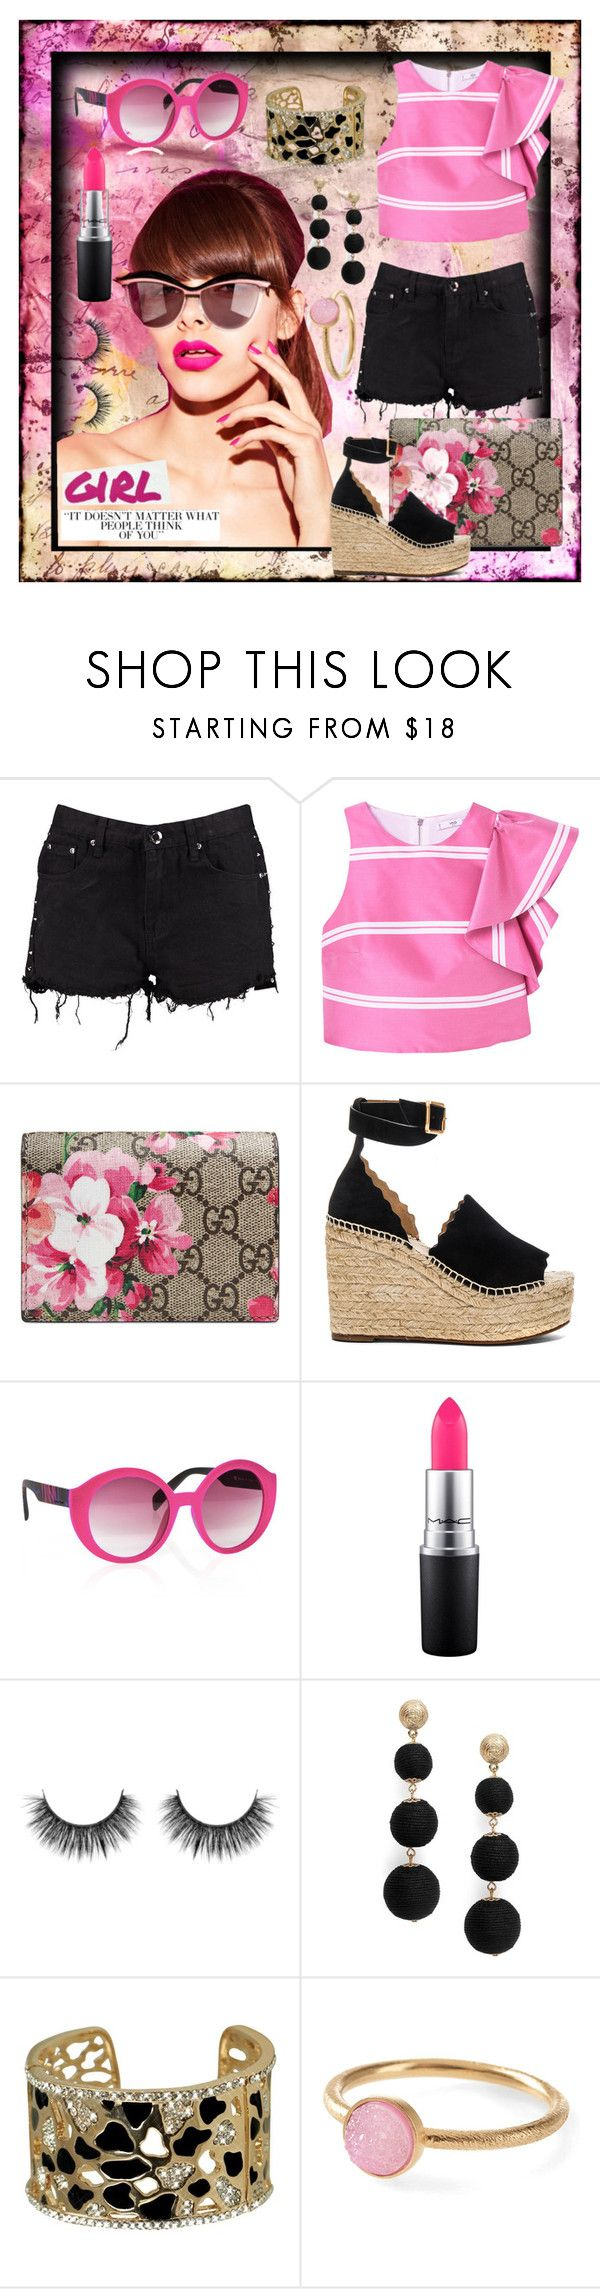 """""""Untitled #149"""" by spudart ❤ liked on Polyvore featuring Boohoo, MANGO, Gucci, Chloé, Italia Independent, MAC Cosmetics, R.J. Graziano, Pernille Corydon and Gwyneth Shoes"""